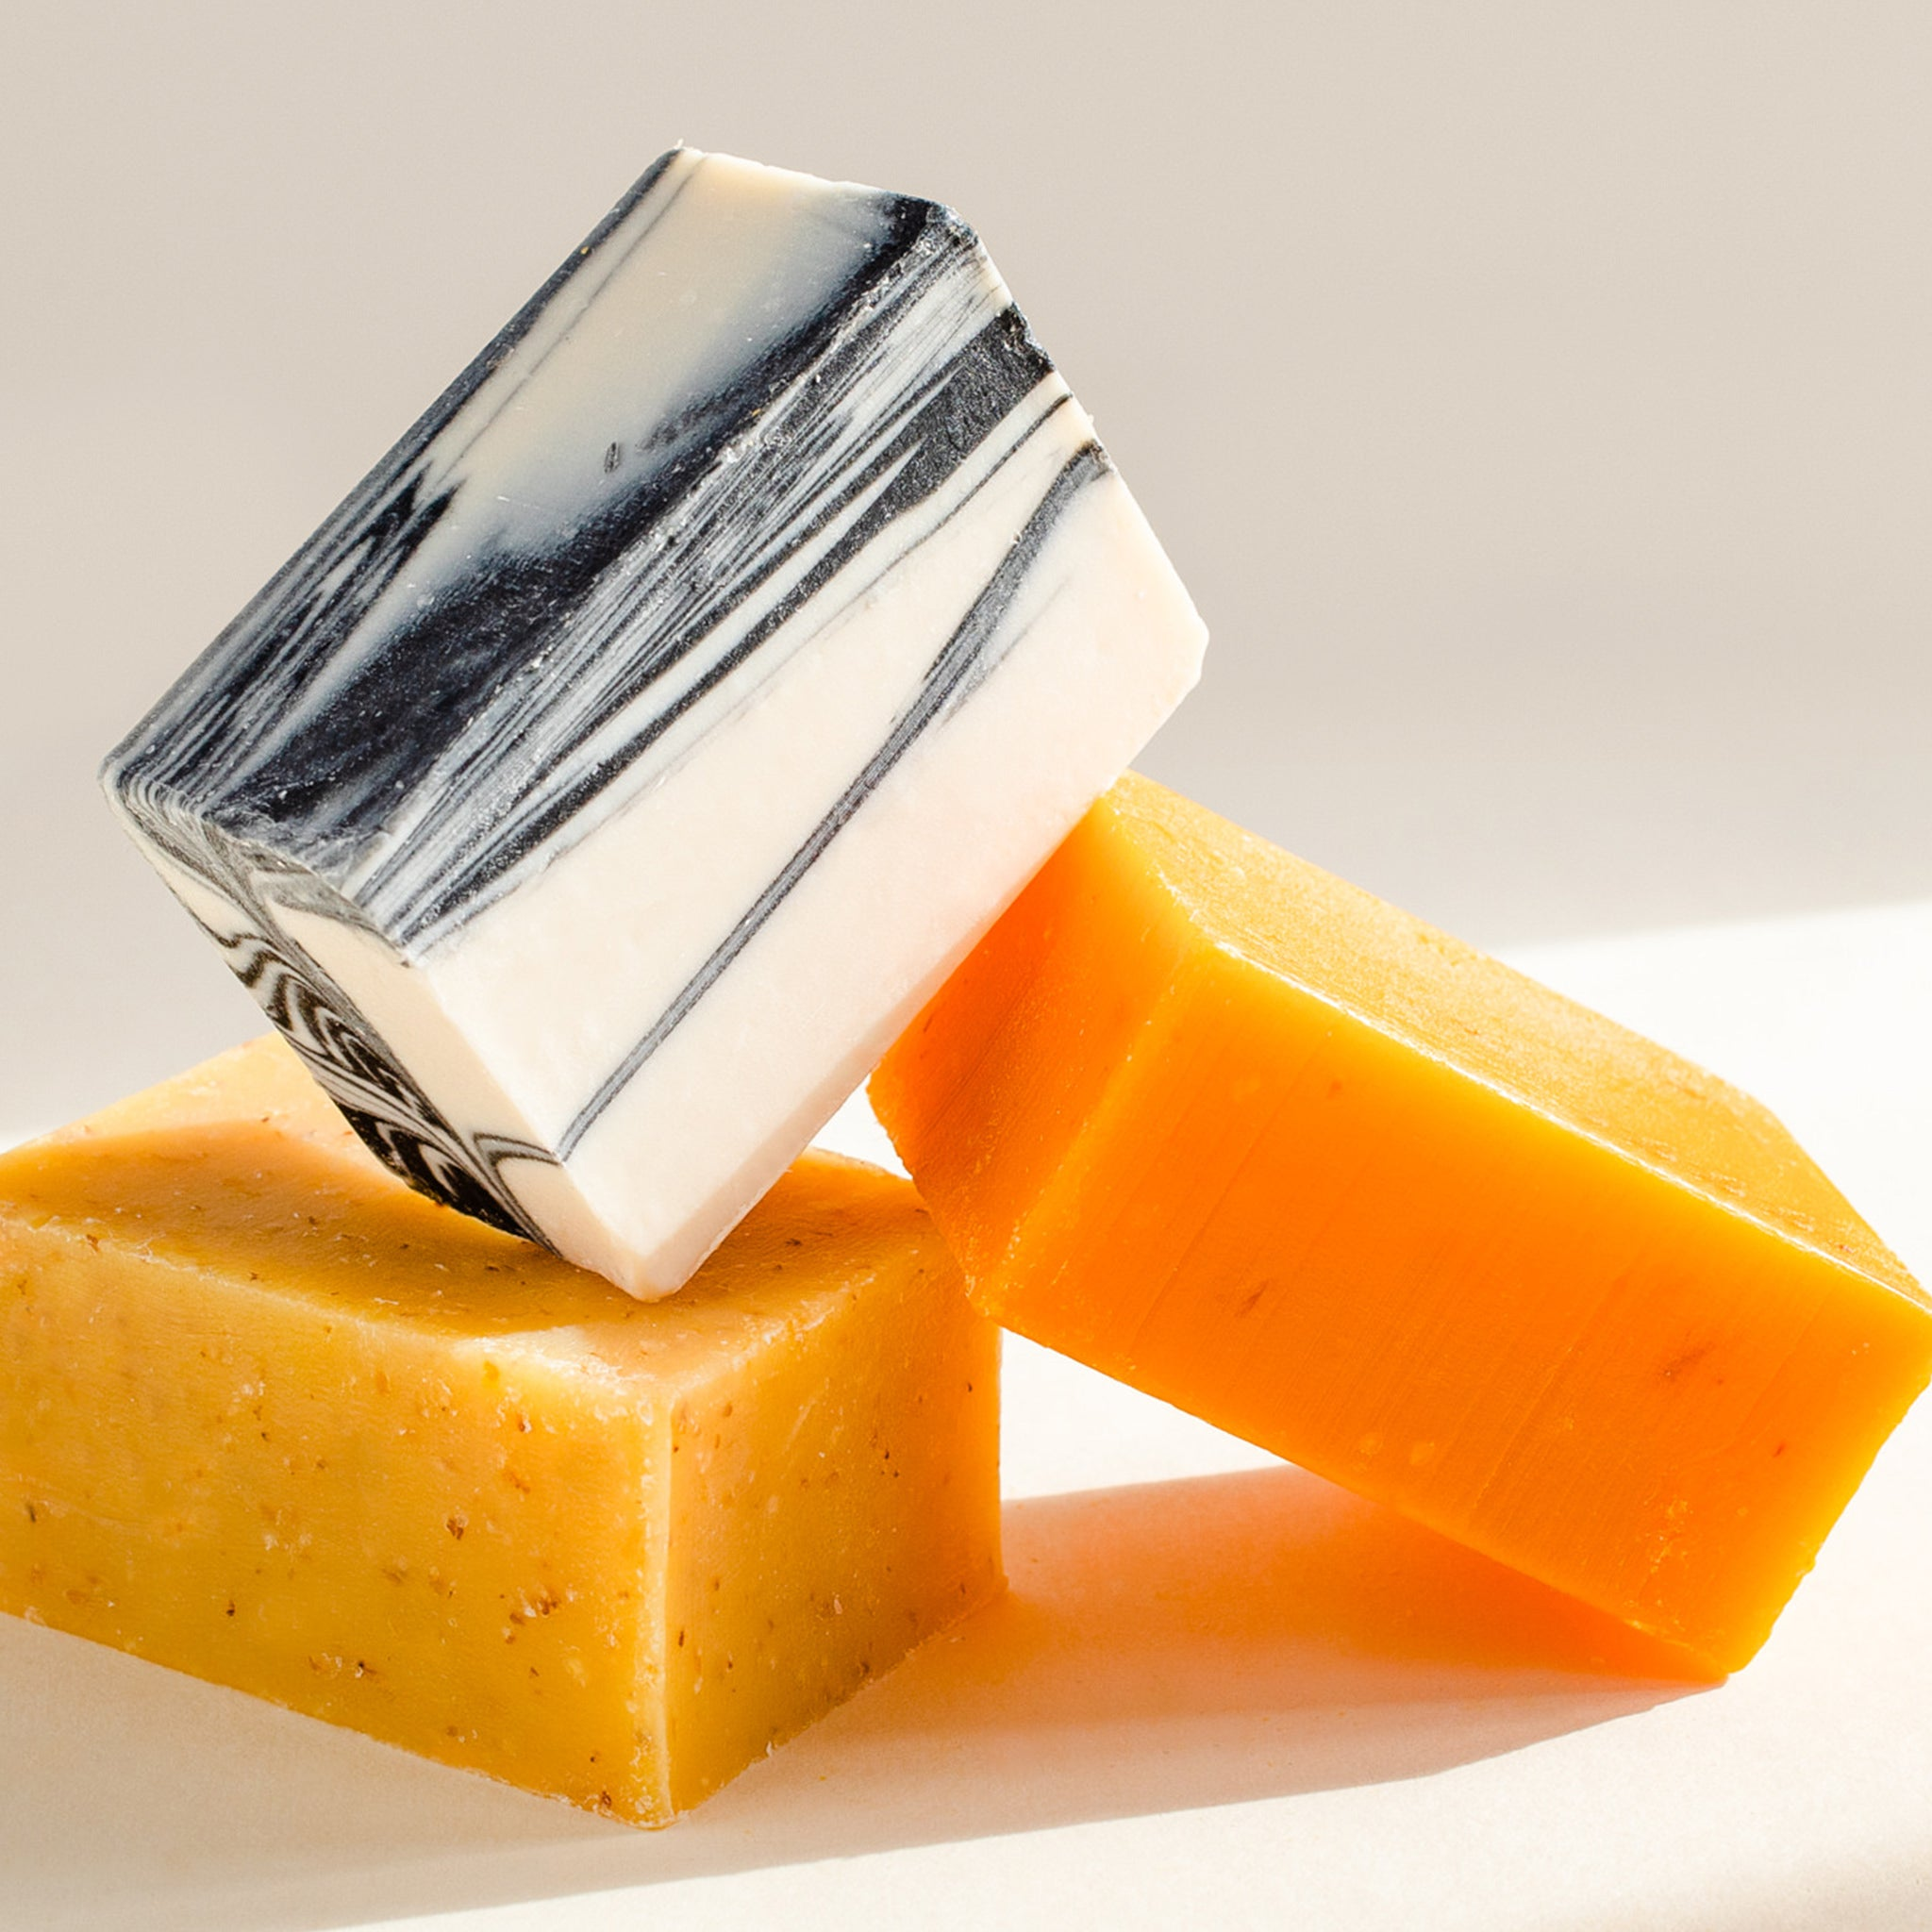 Three natural bar soaps made in Canada.